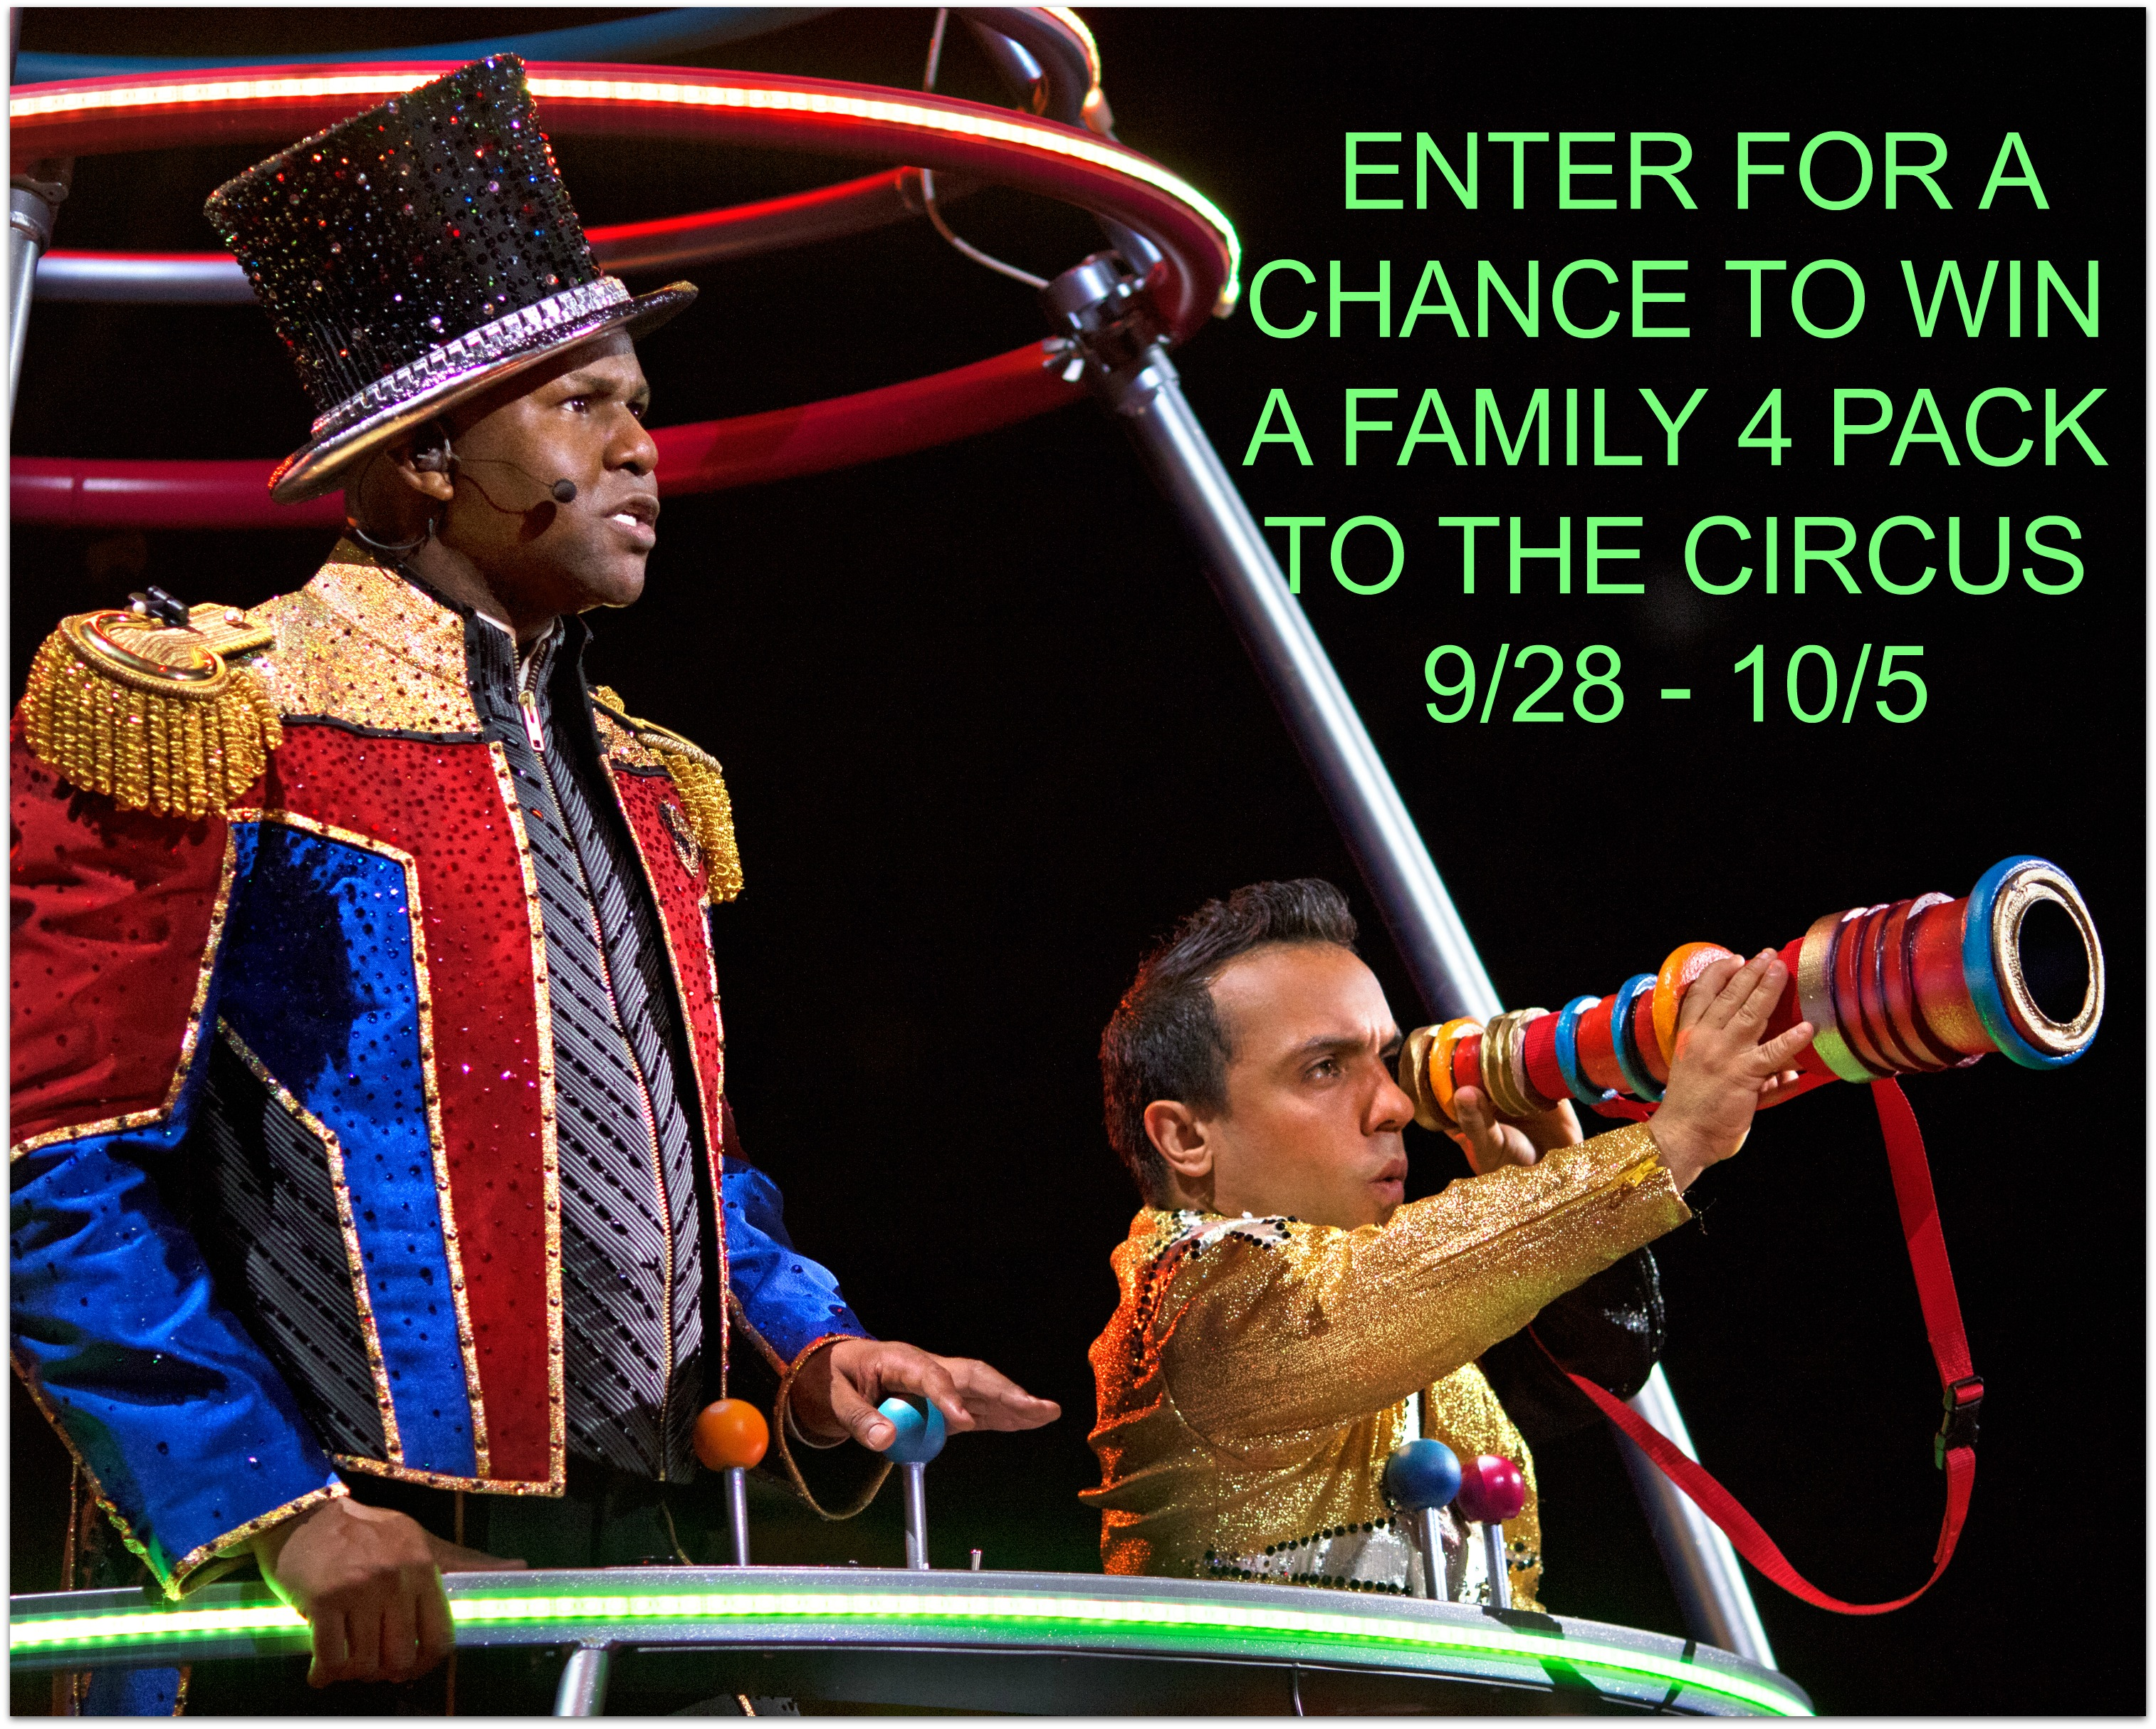 Enter to win a family 4 pack of tickets to the  Ringling Bros. and Barnum and Bailey circus (ends 10/5/16) #giveaways